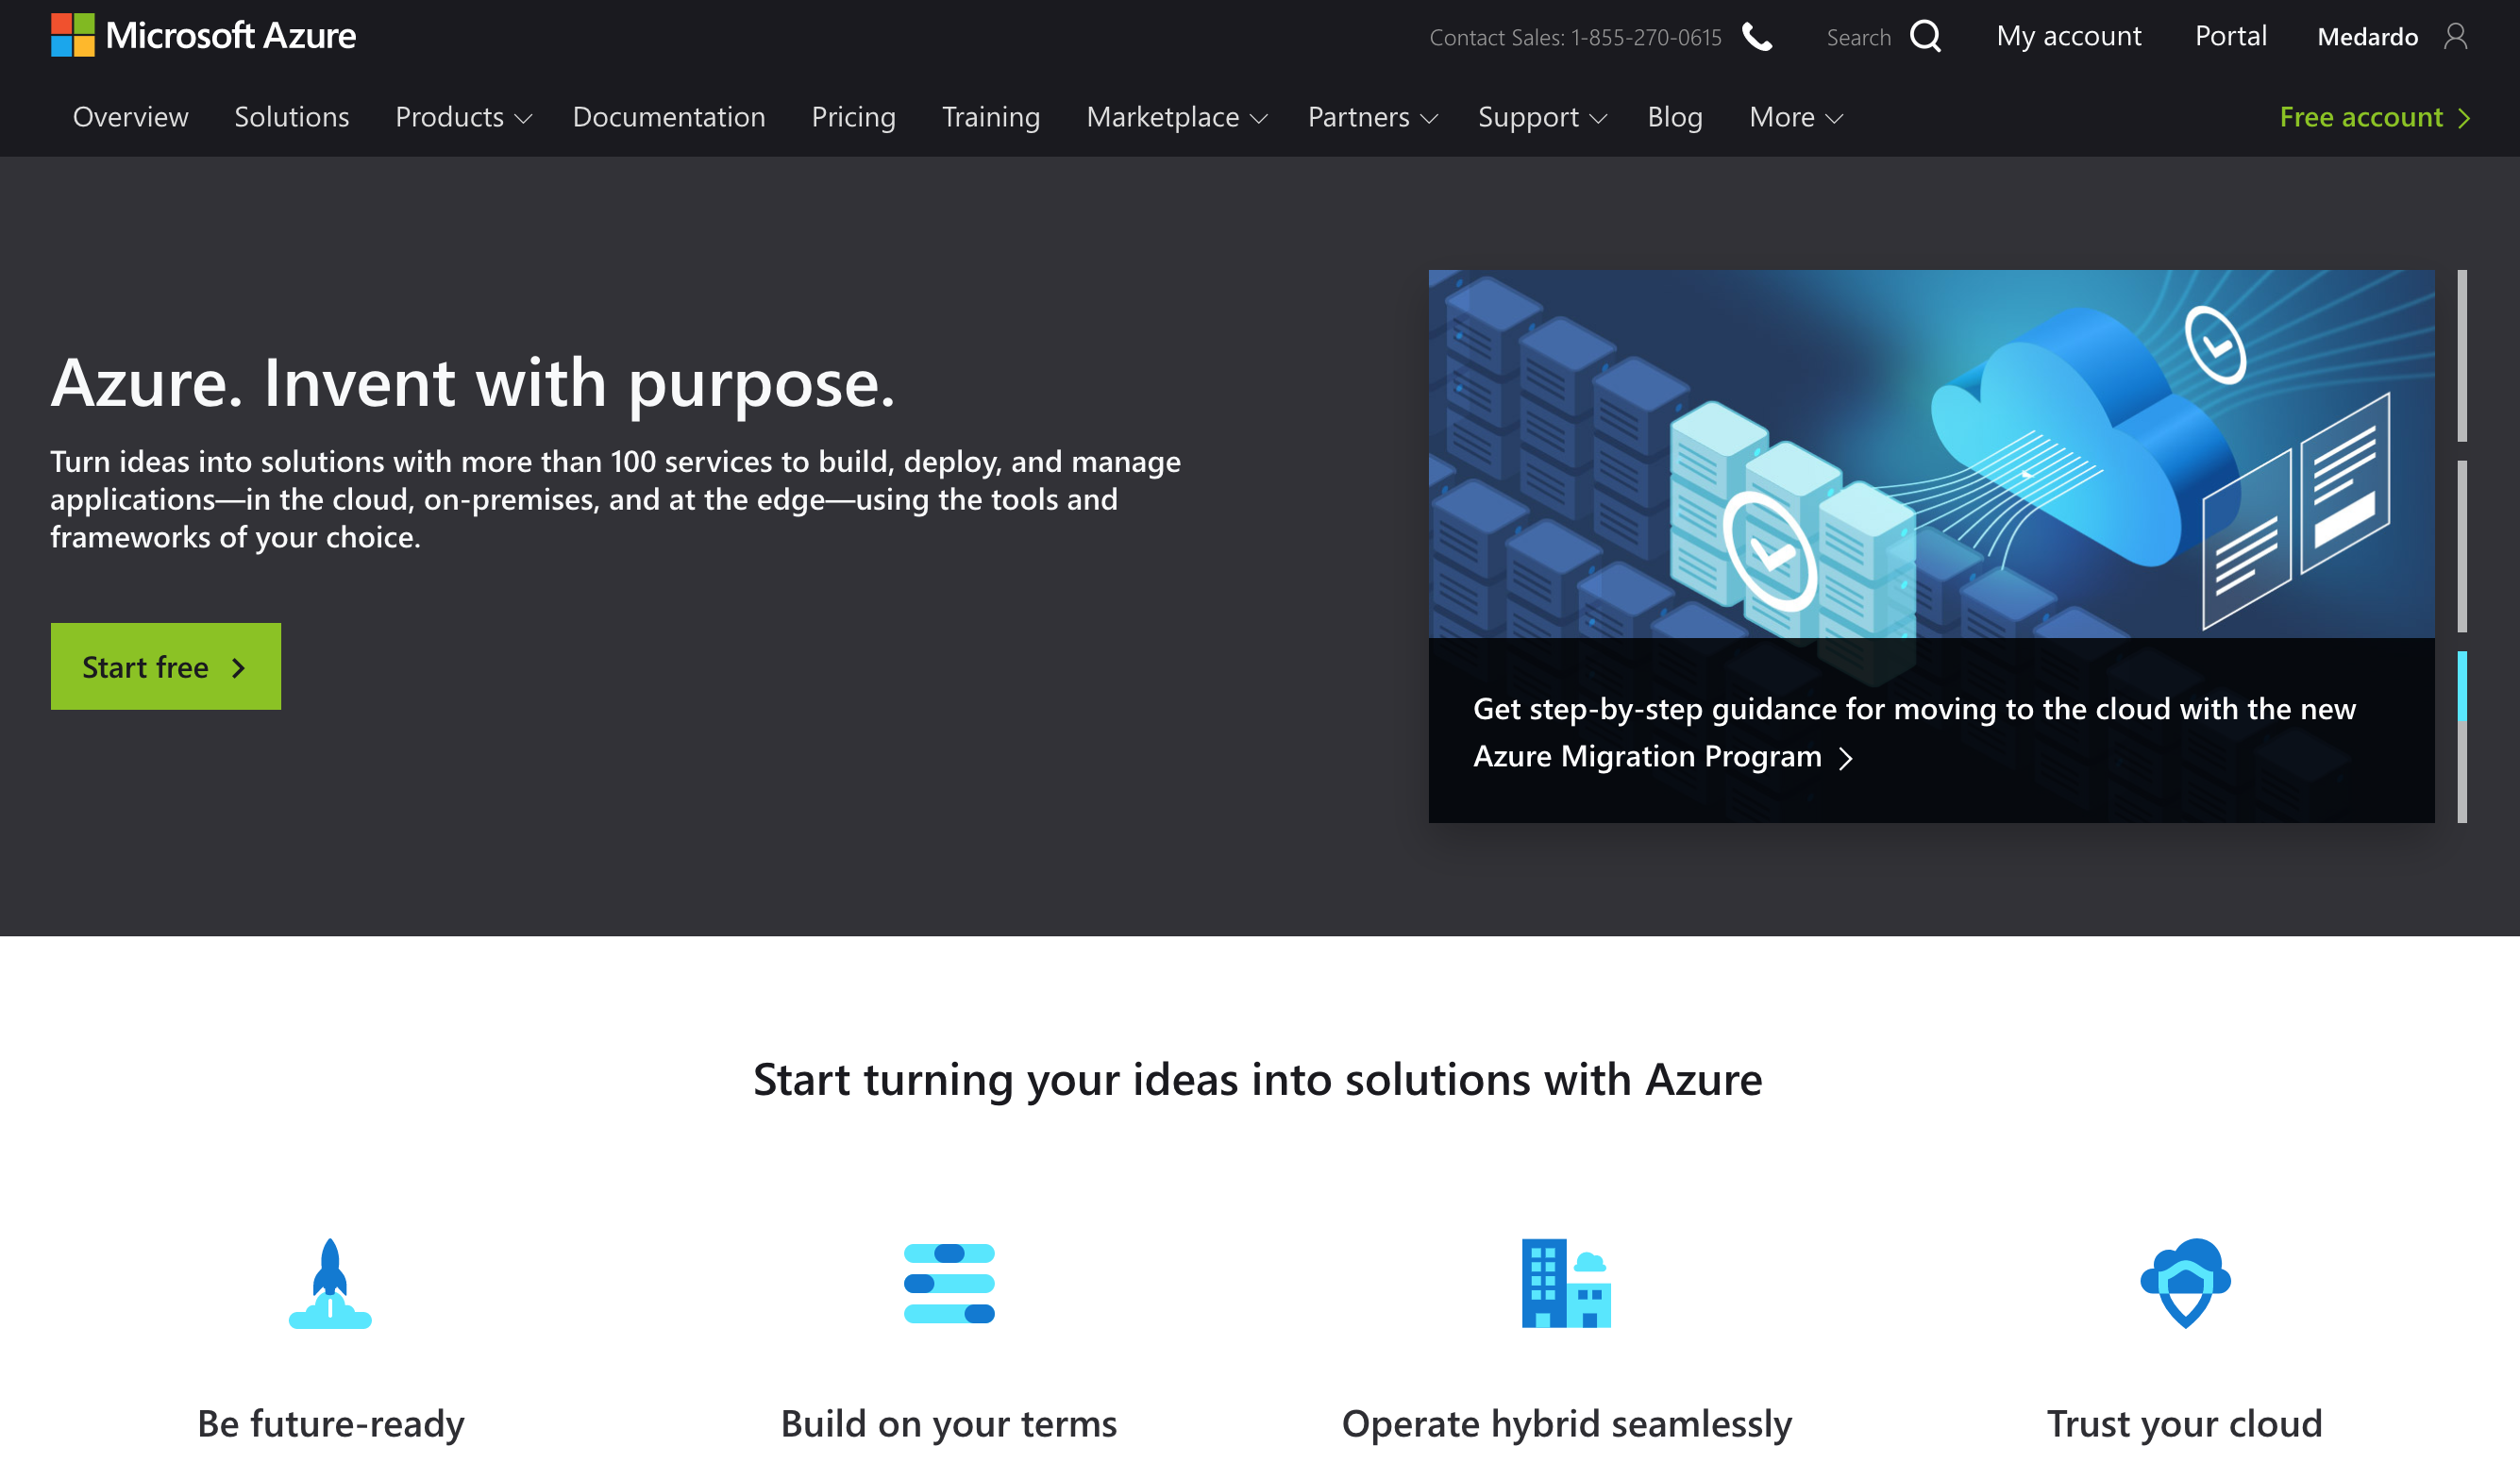 A redirect for Microsoft's cloud services offering